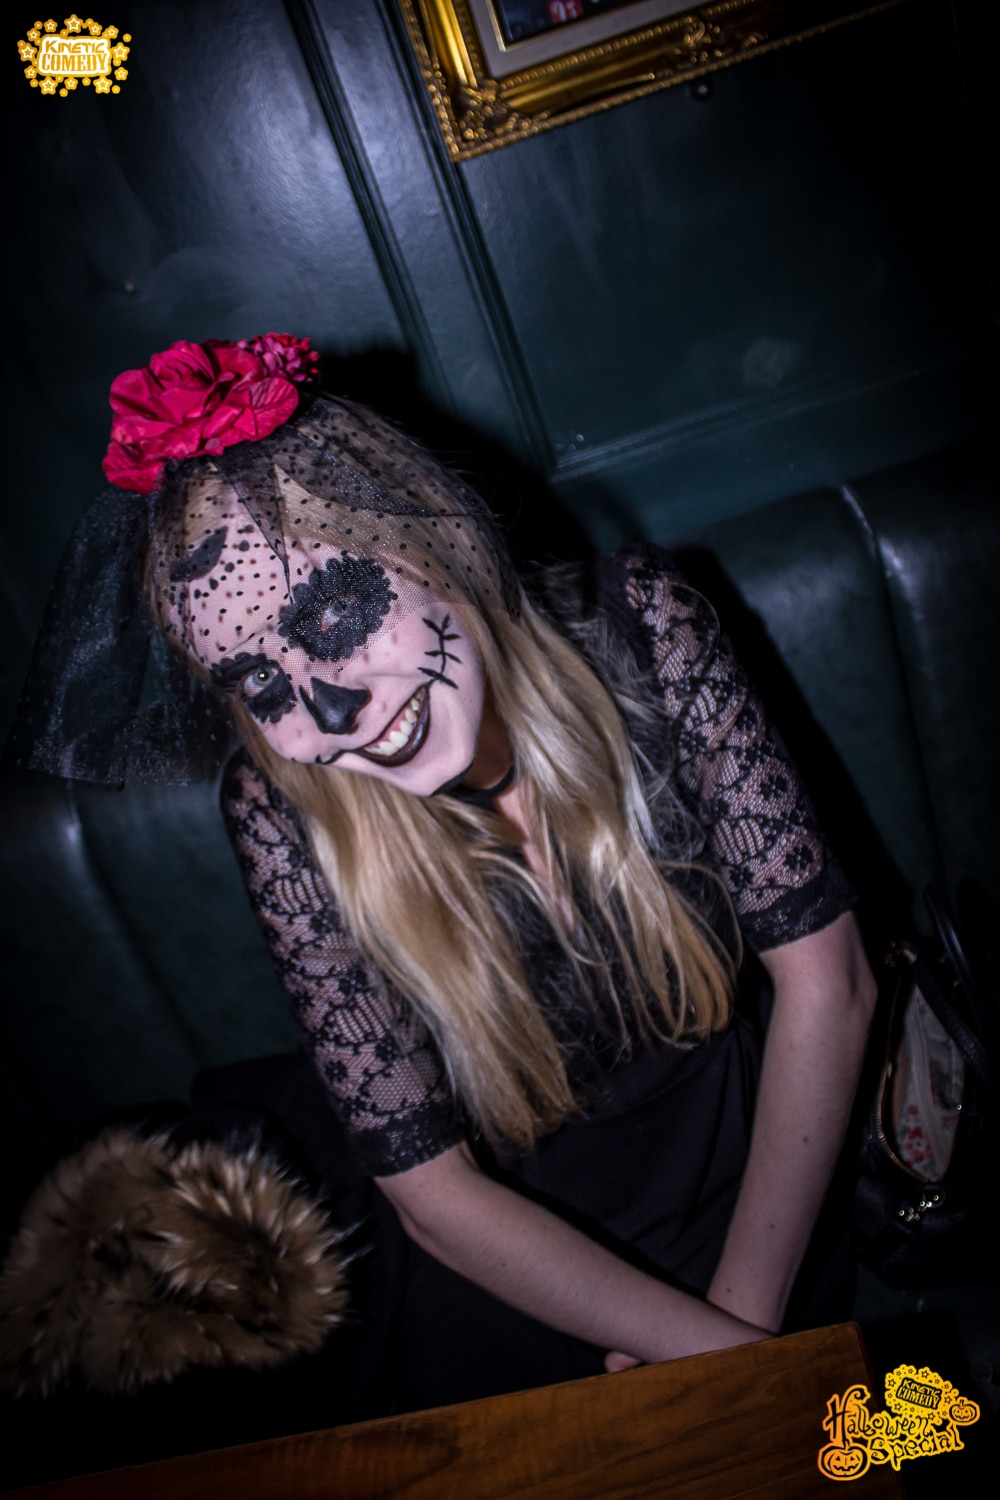 Halloween 2015 photos now online